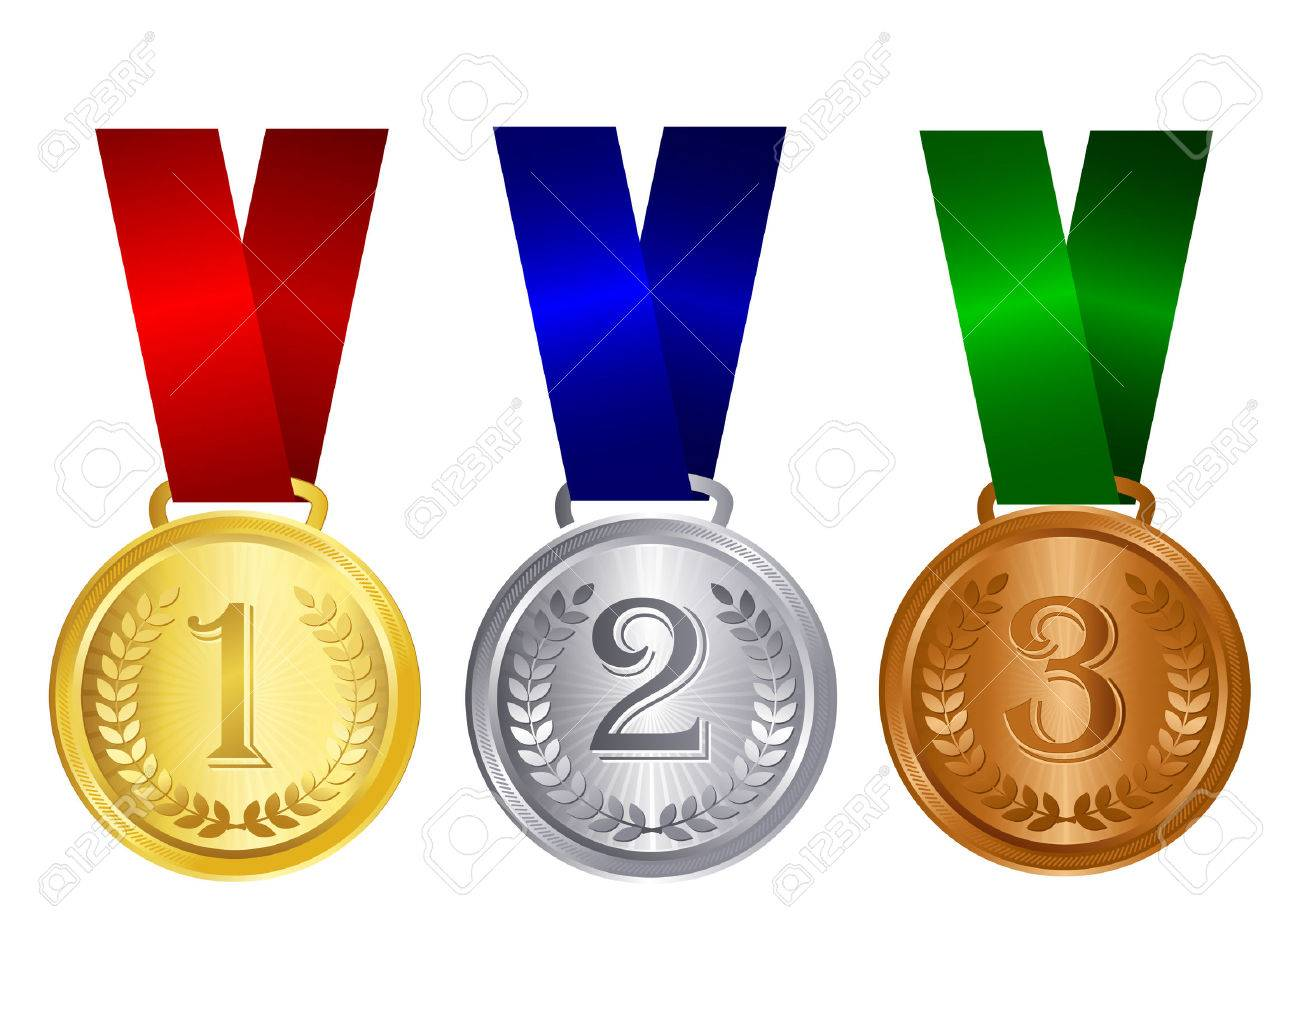 Gold silver and bronze medals with red blue and green ribbons...